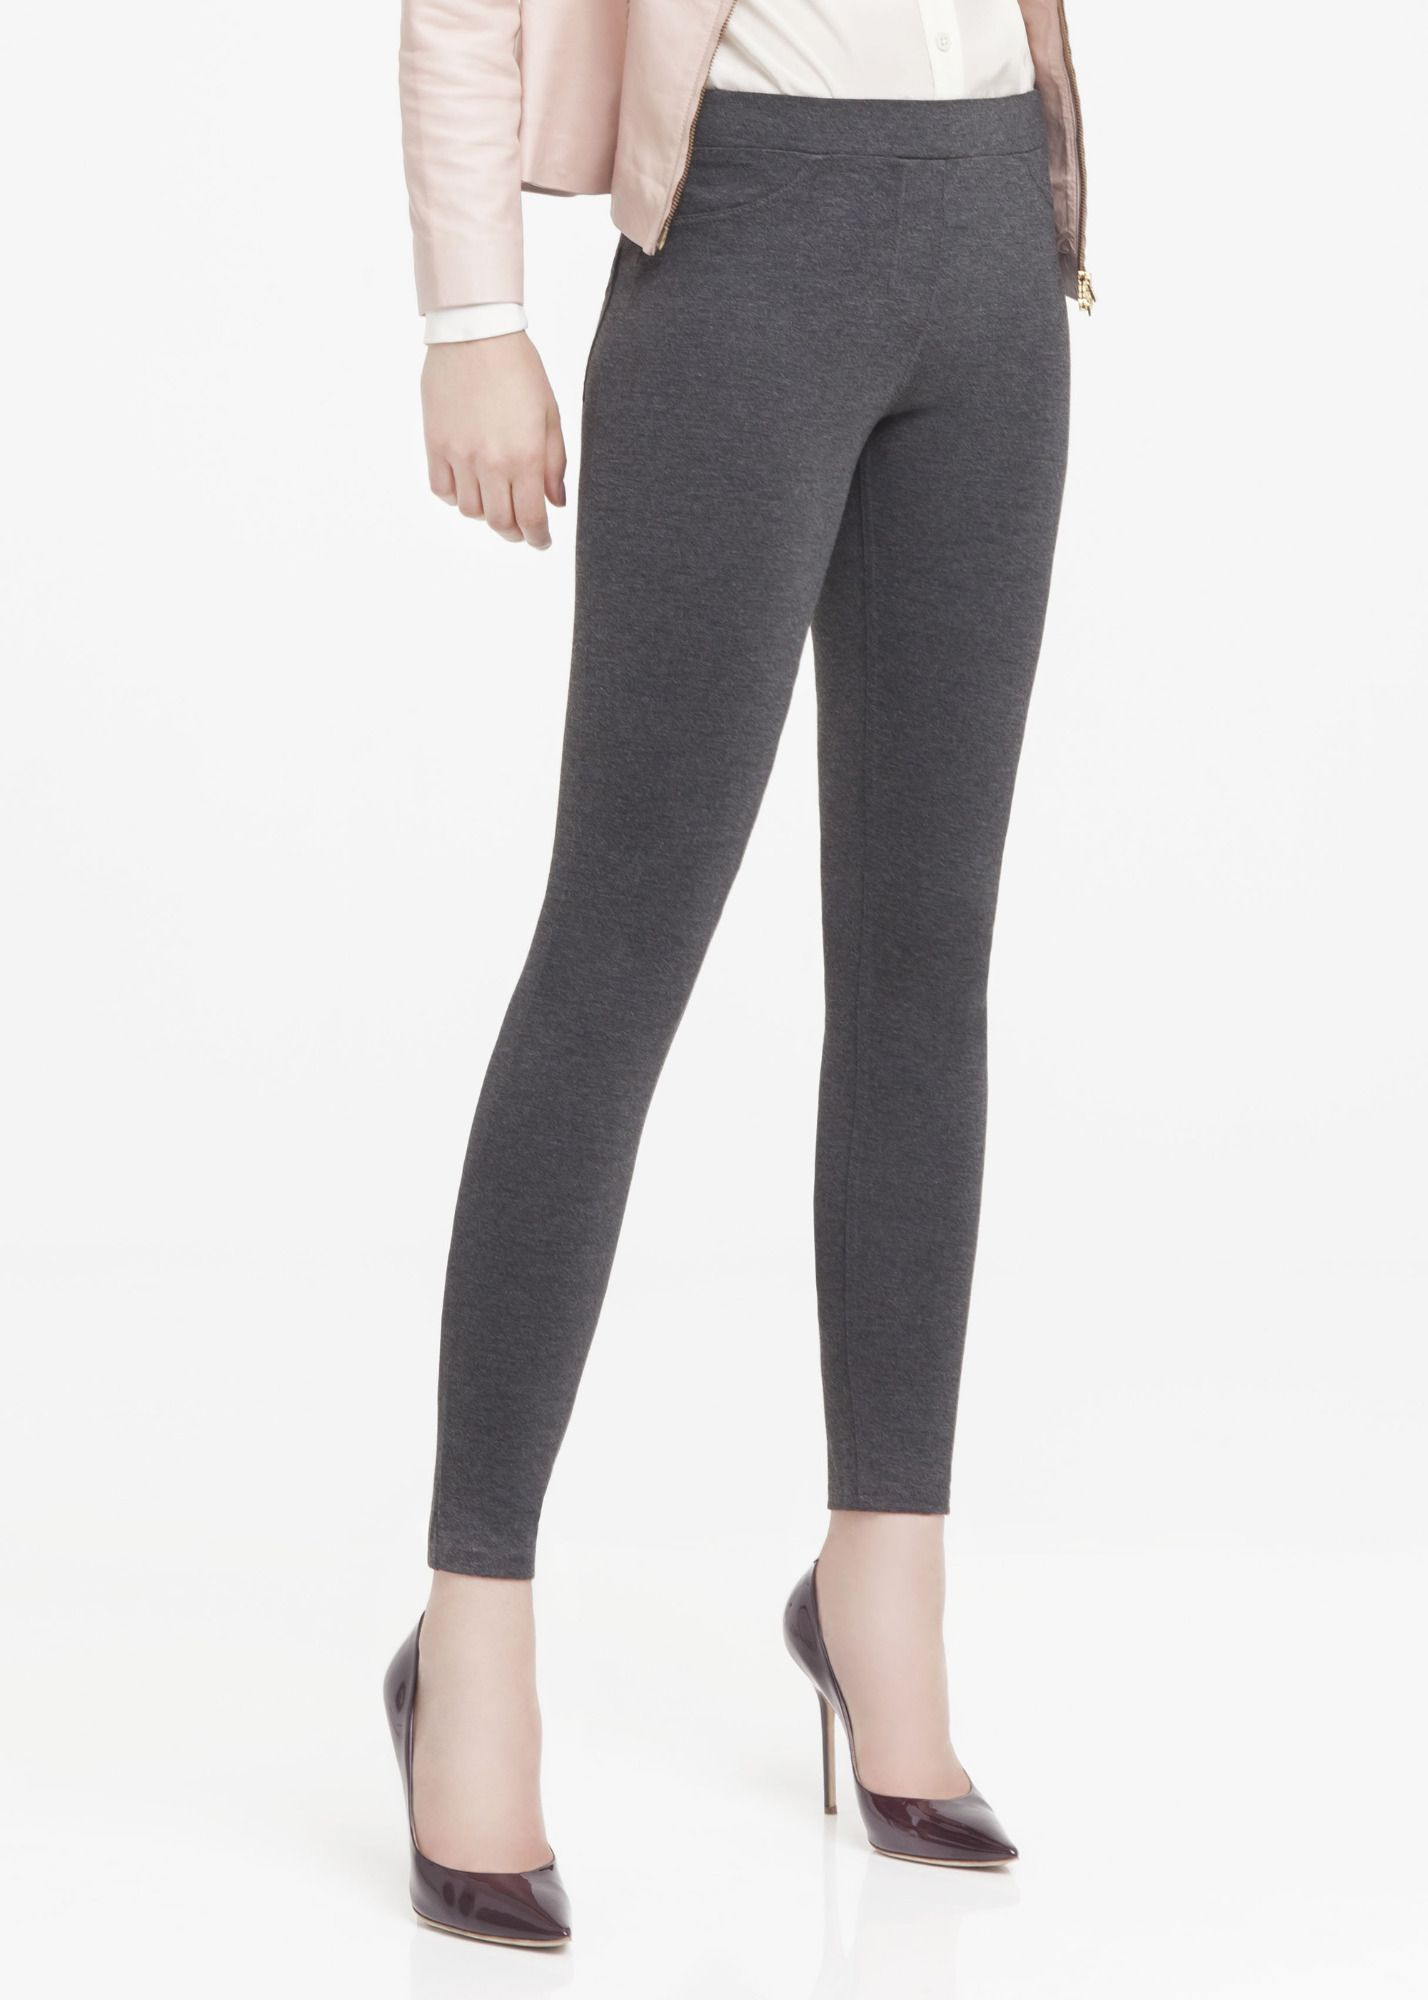 LEGGINGS ESSENCE Philippe Matignon